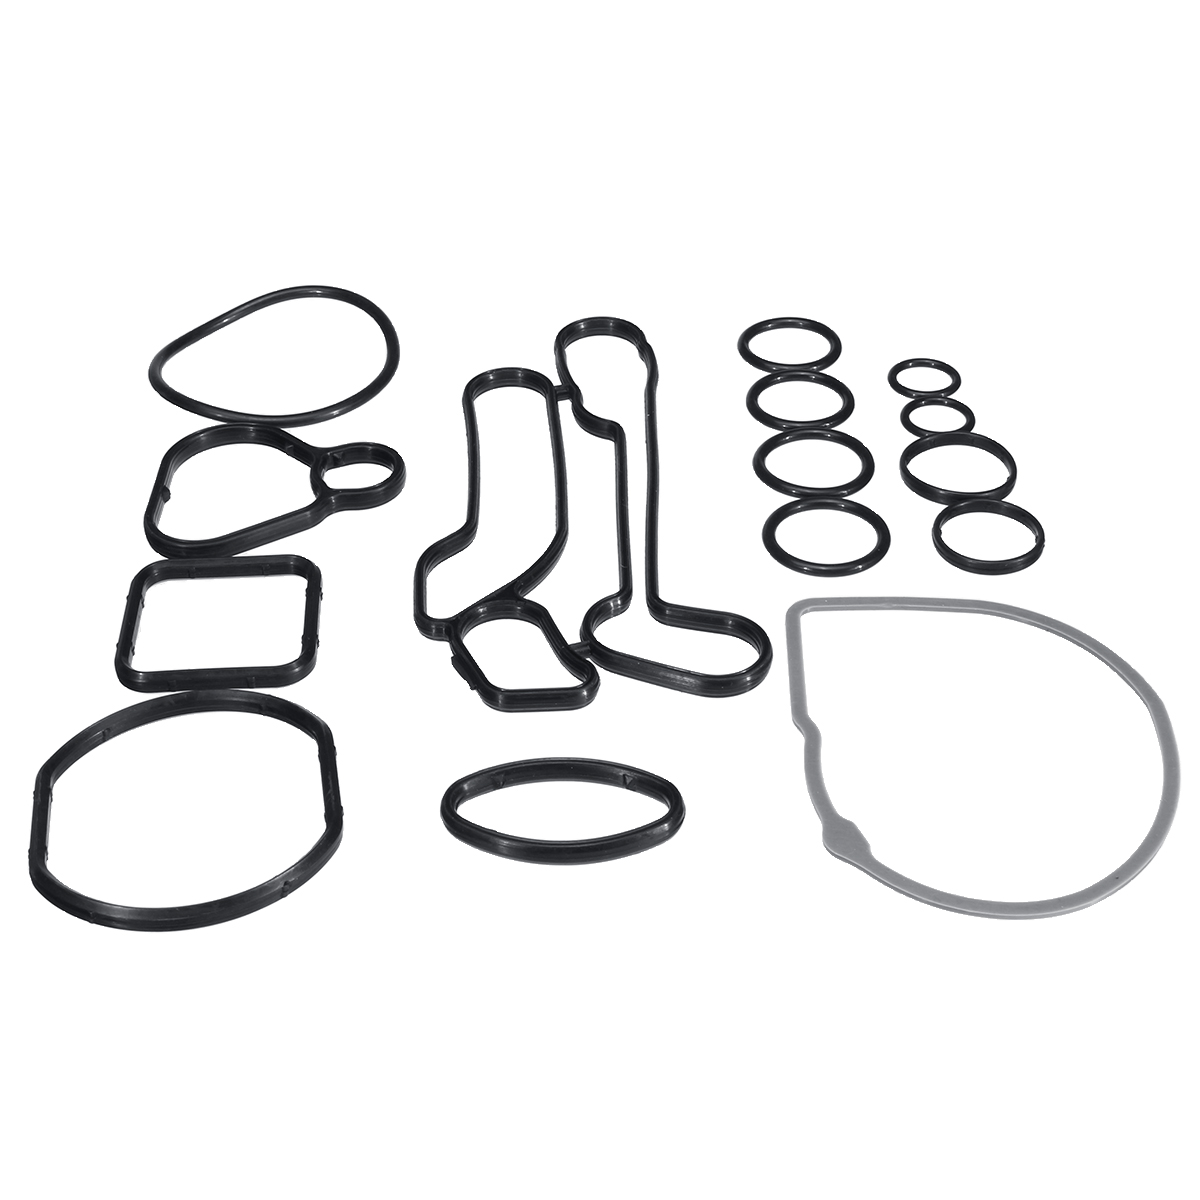 15Pcs Car Engine Oil Cooler Cooling System Filter Gasket Seal <font><b>24445723</b></font> 55354071 For Chevrole tCruze 1.6L 1.8L Sonic Astra Zafira image